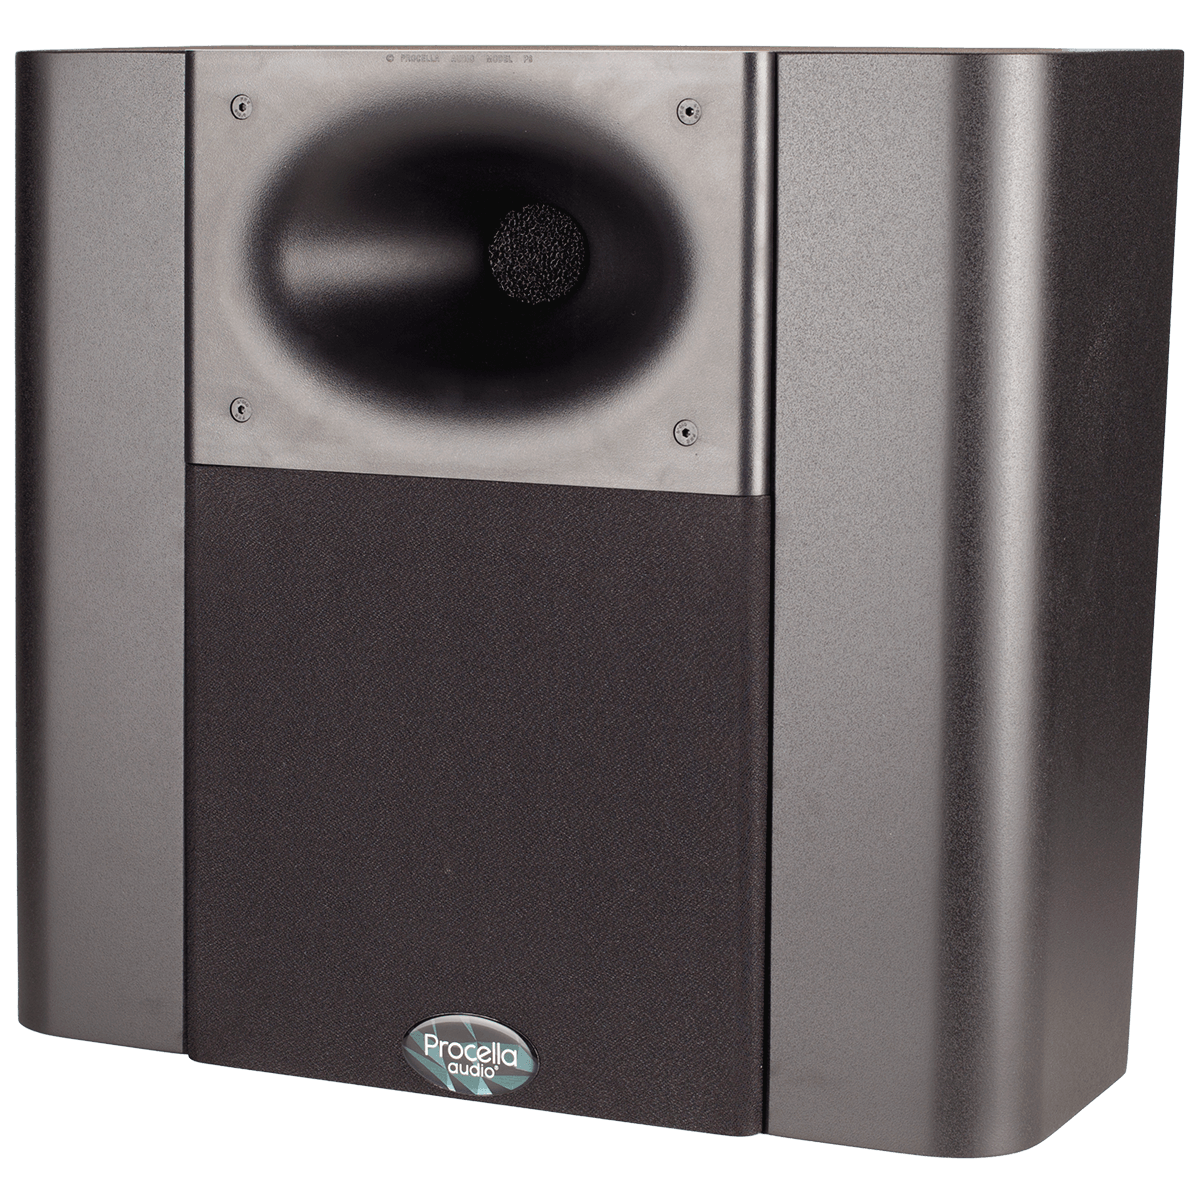 Procella P8 side with cover 1200×1200